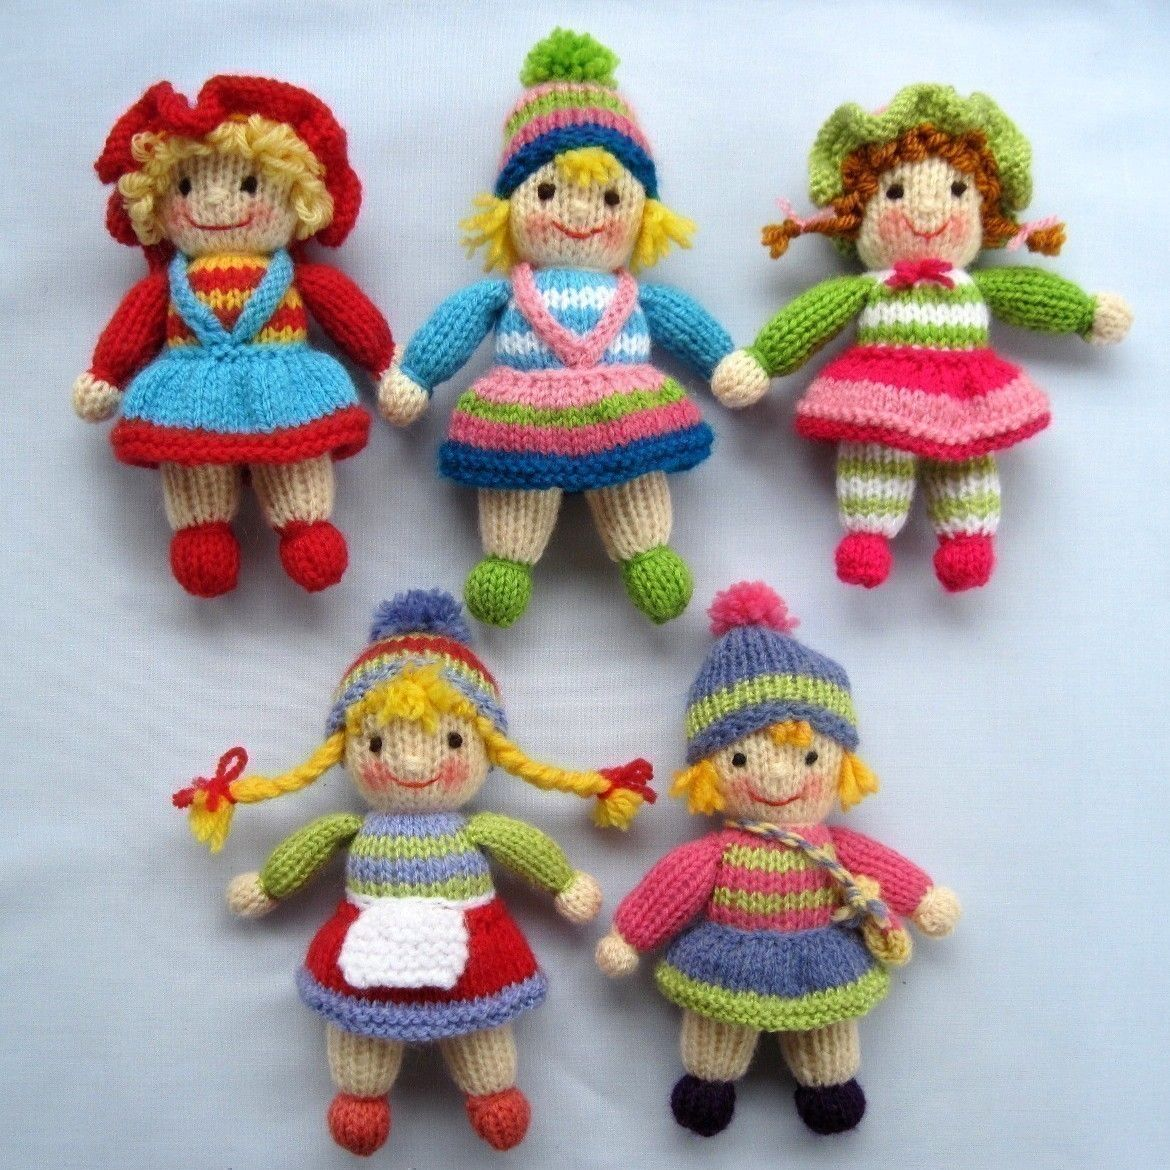 Jolly tots dolls knitting pattern instant download knitting jolly tots dolls knitting pattern instant download bankloansurffo Image collections